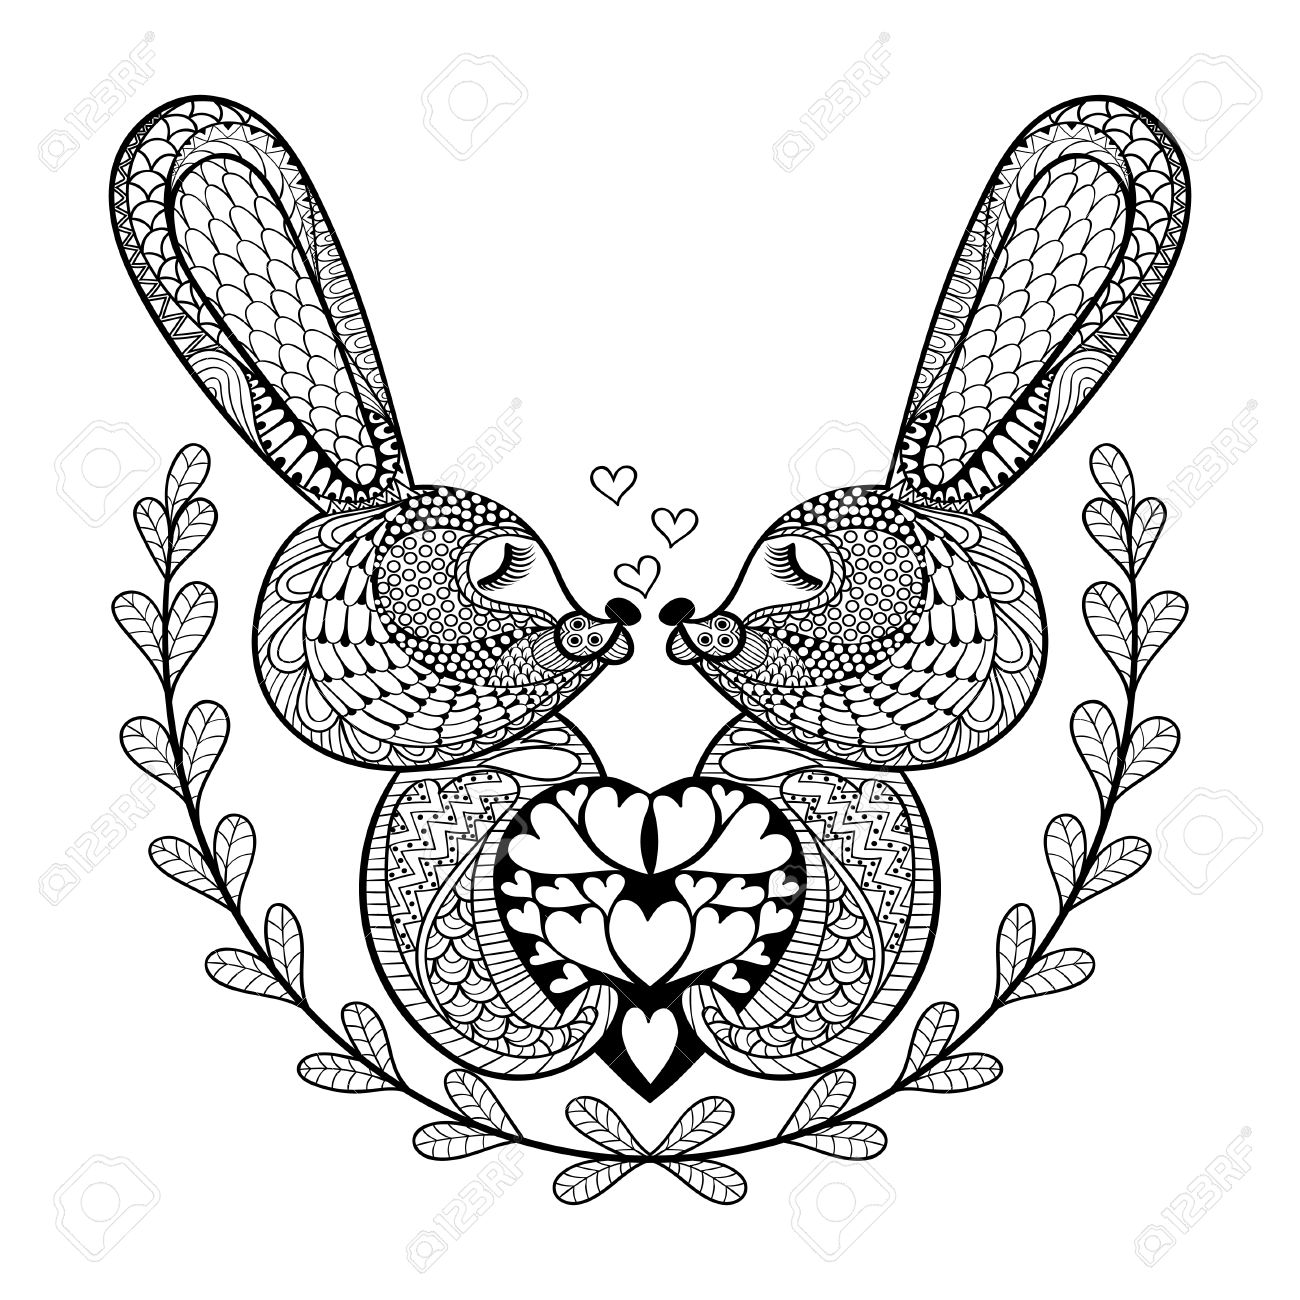 Coloring pages for adults valentines day - Hand Drawn Lovely Rabbit For St Valentine S Day In Doodle Zentangle Style For Adult